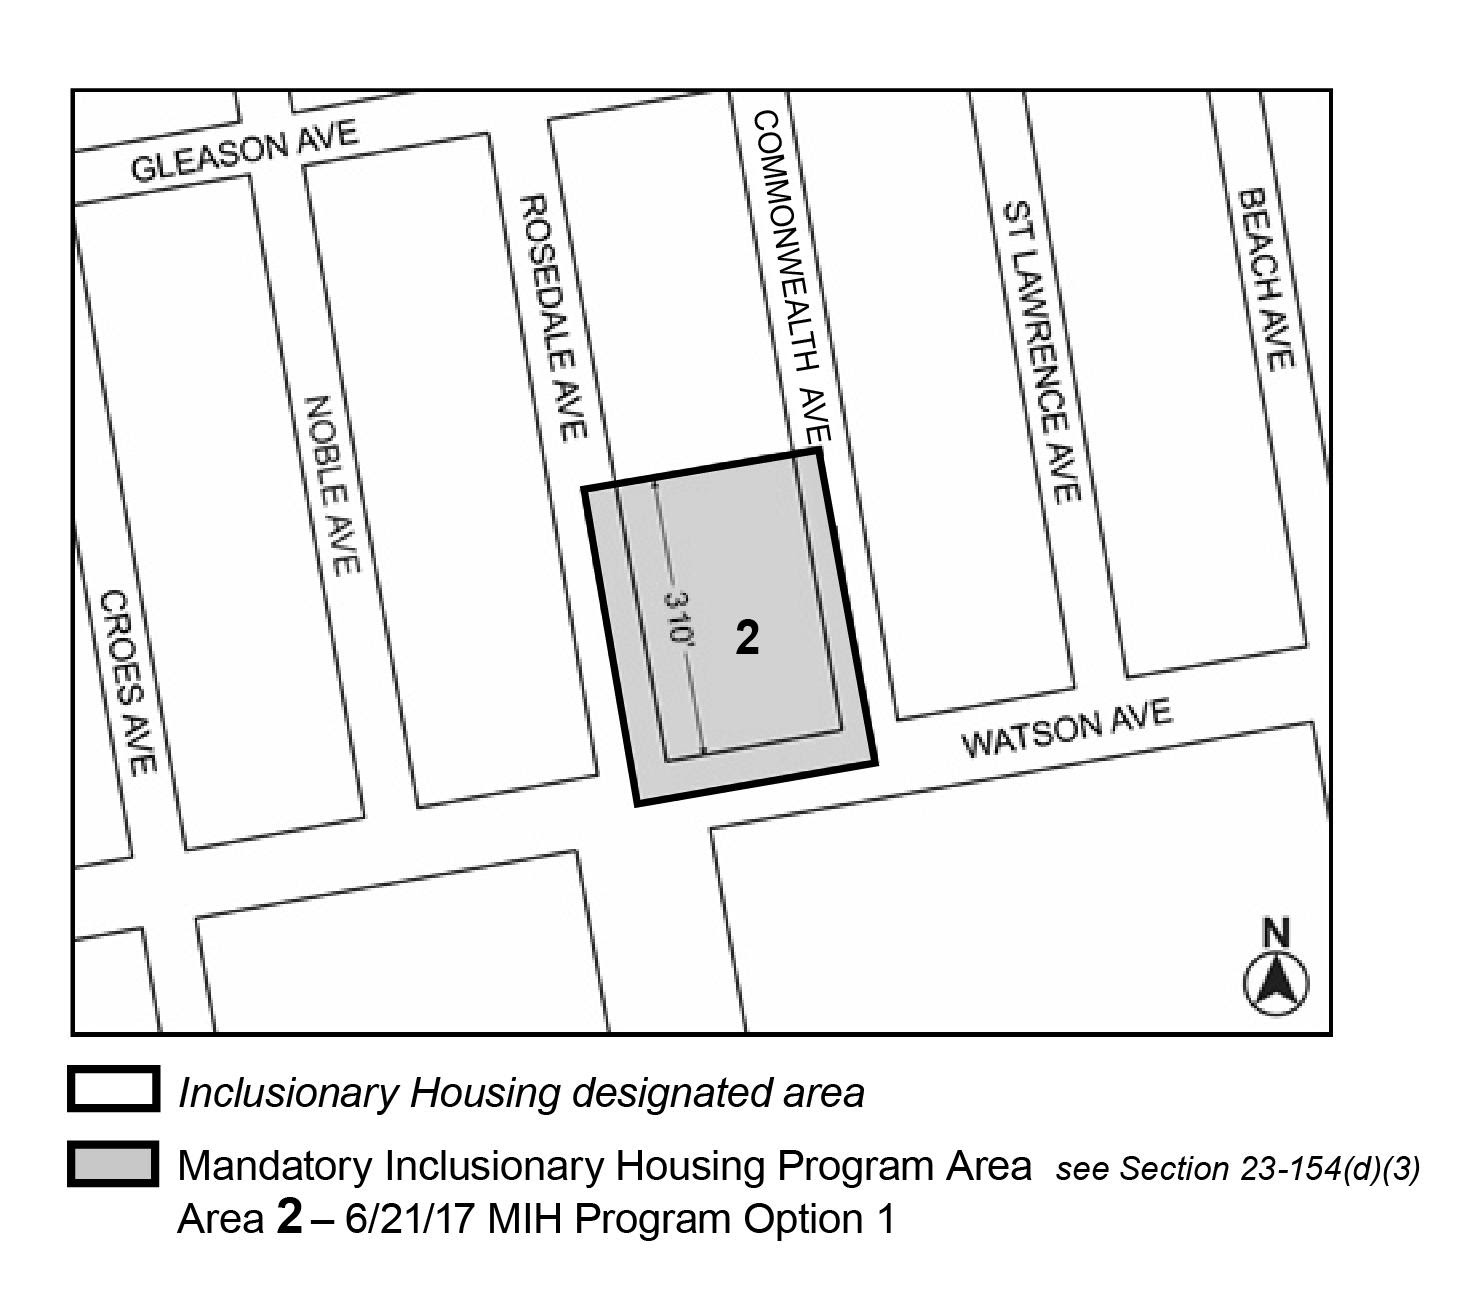 Zoning Resolutions F-Inclusionary Housing Designated Areas and Mandatory Inclusionary Housing Areas_2.28